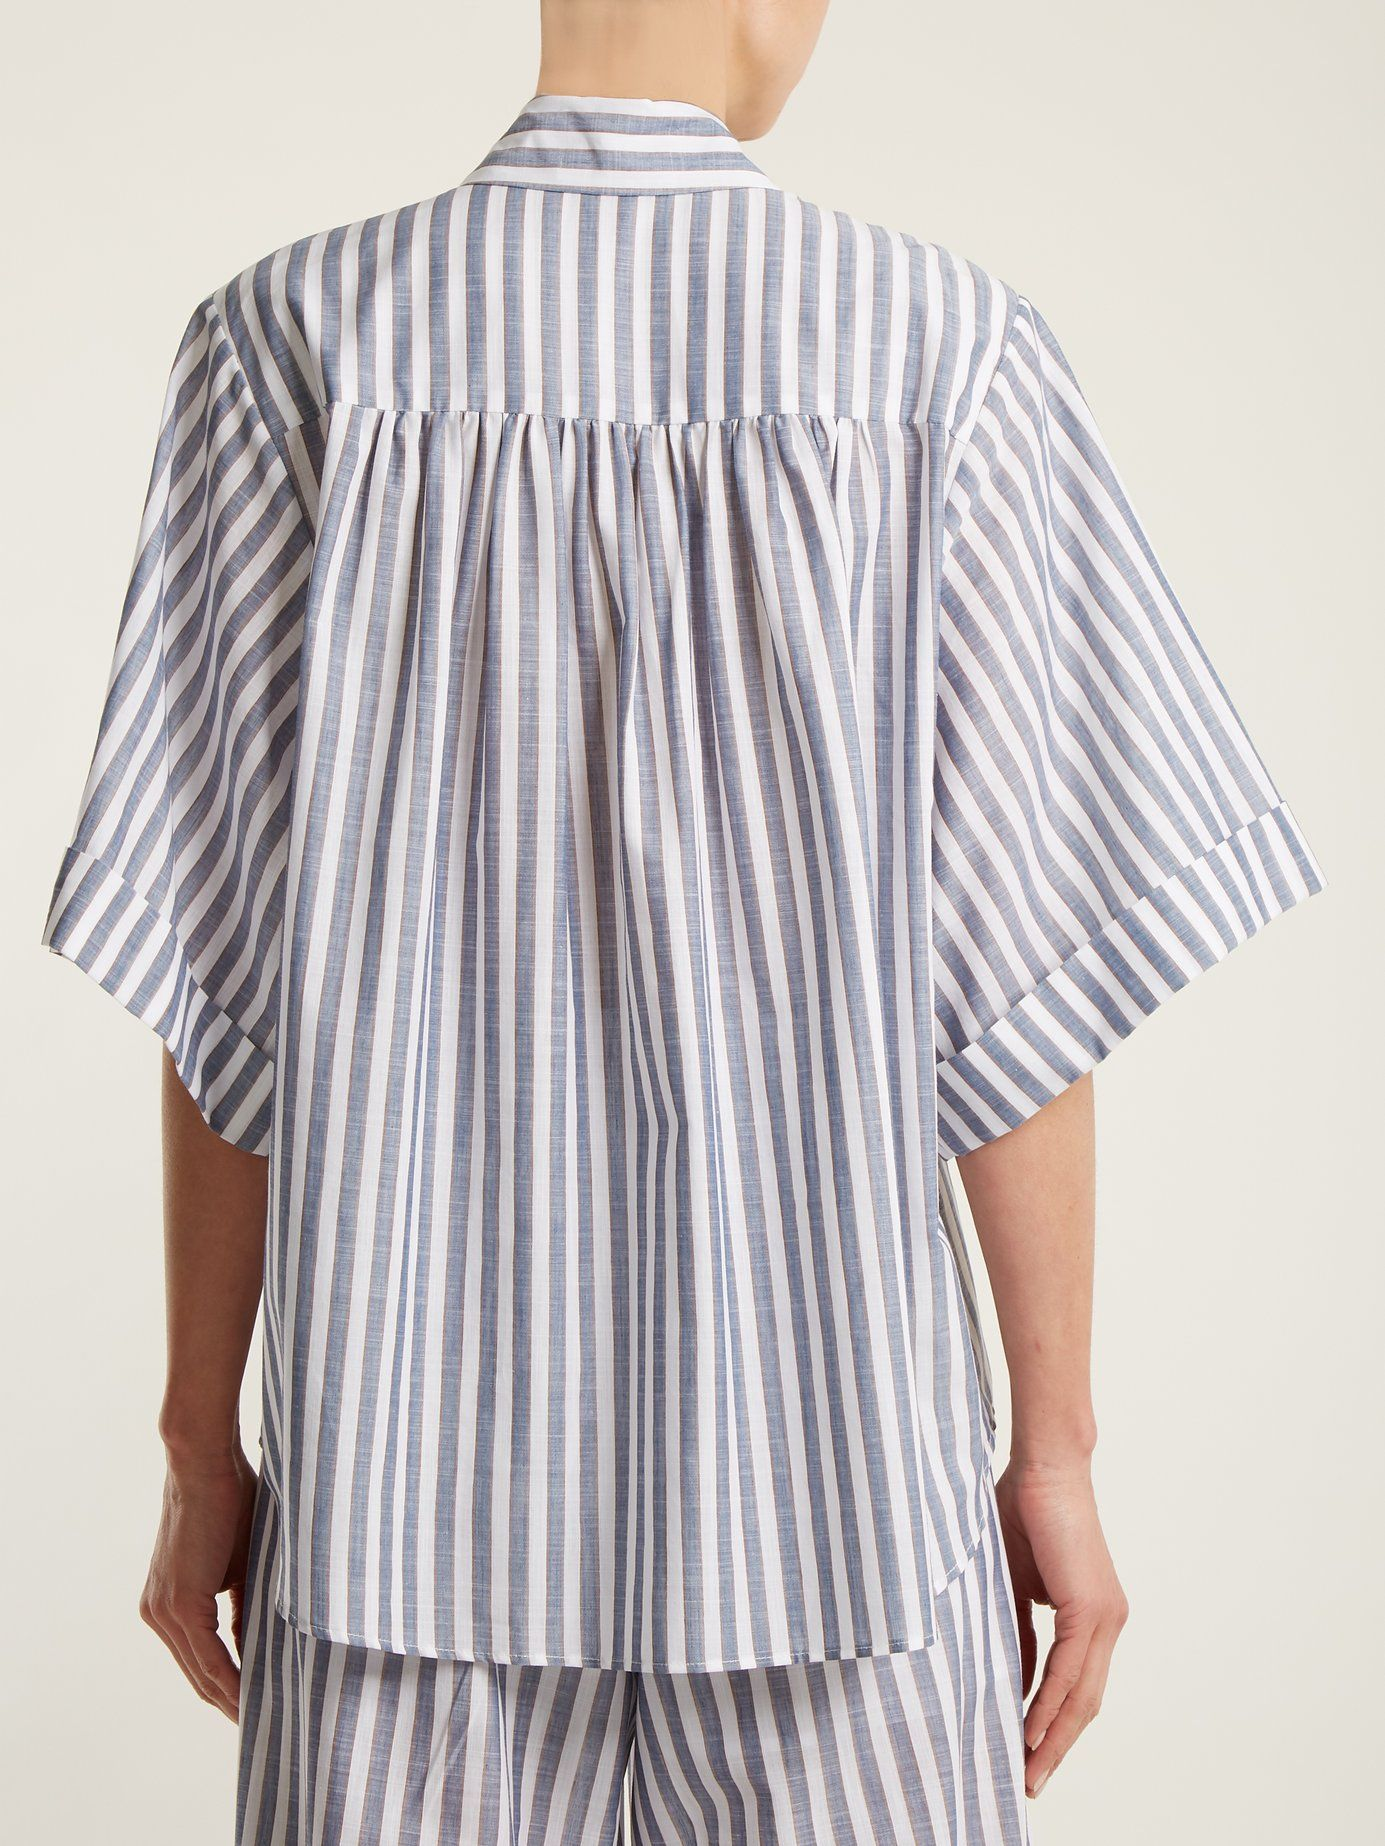 Discount Inexpensive Free Shipping Affordable Marta stripe-print cotton shirt Caroline Constas Cheap Real Authentic Geniue Stockist Sale Online 9E8eDJF6w